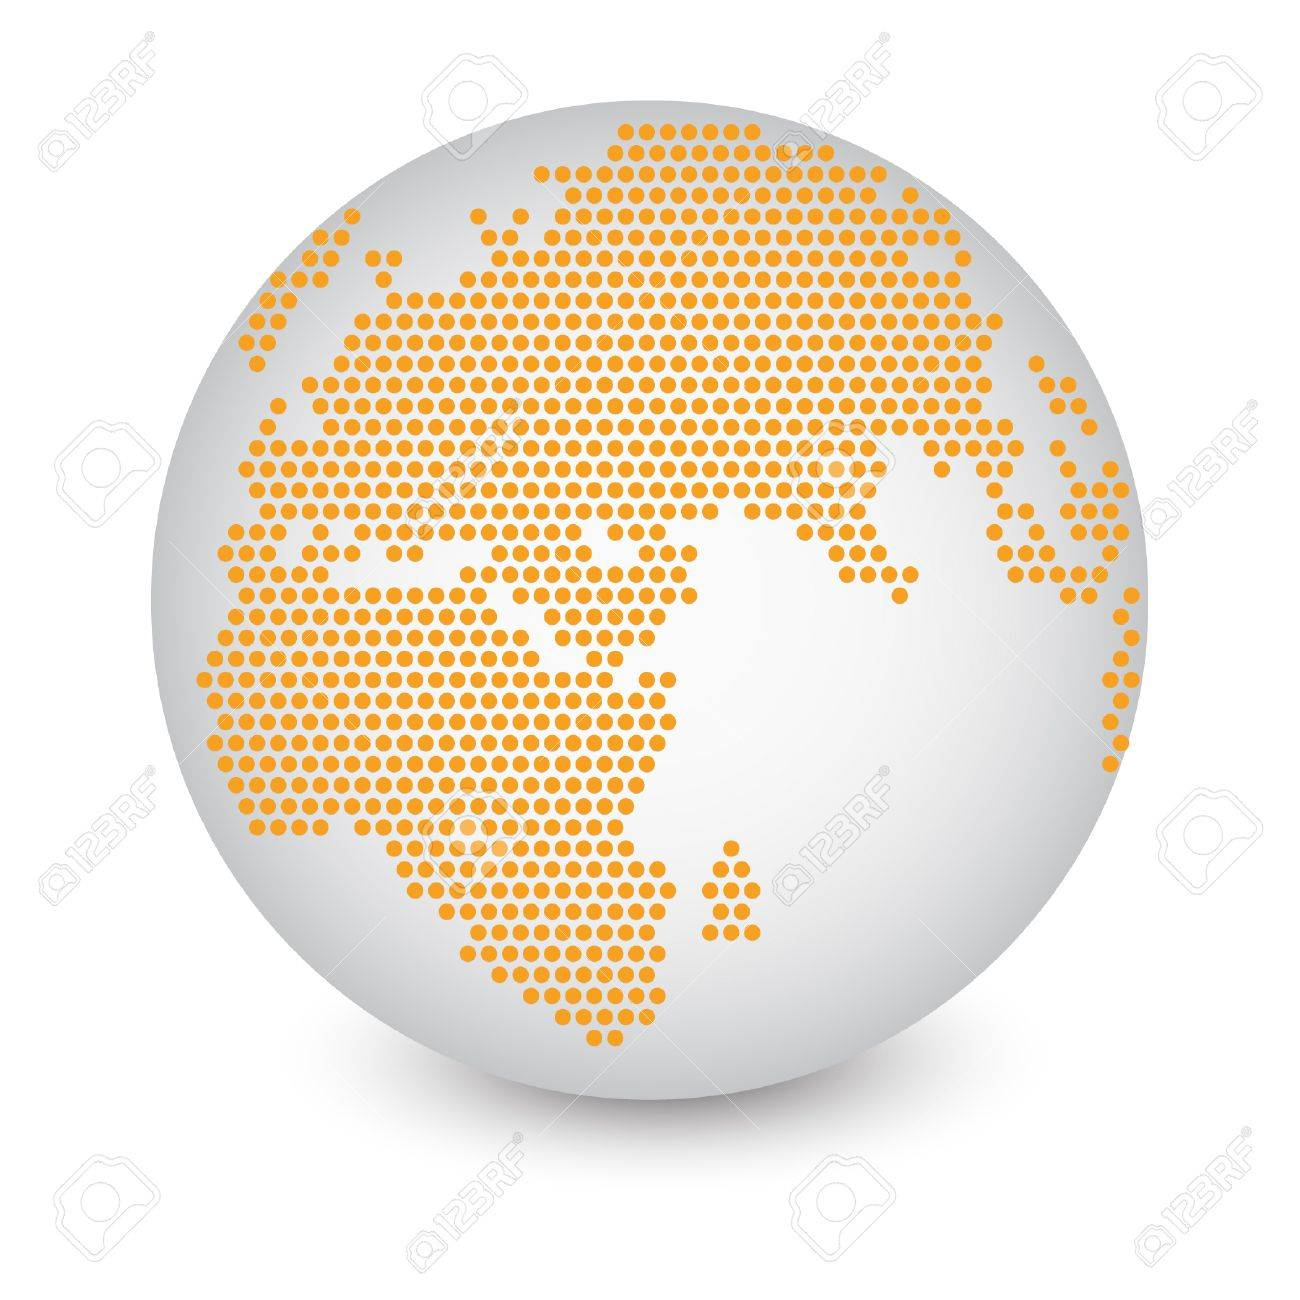 World map in globe vector copy best world map cartoon globe best dotted world map globe made of circle shapes vector illustration eps 10 stock vector 24382023 gumiabroncs Image collections